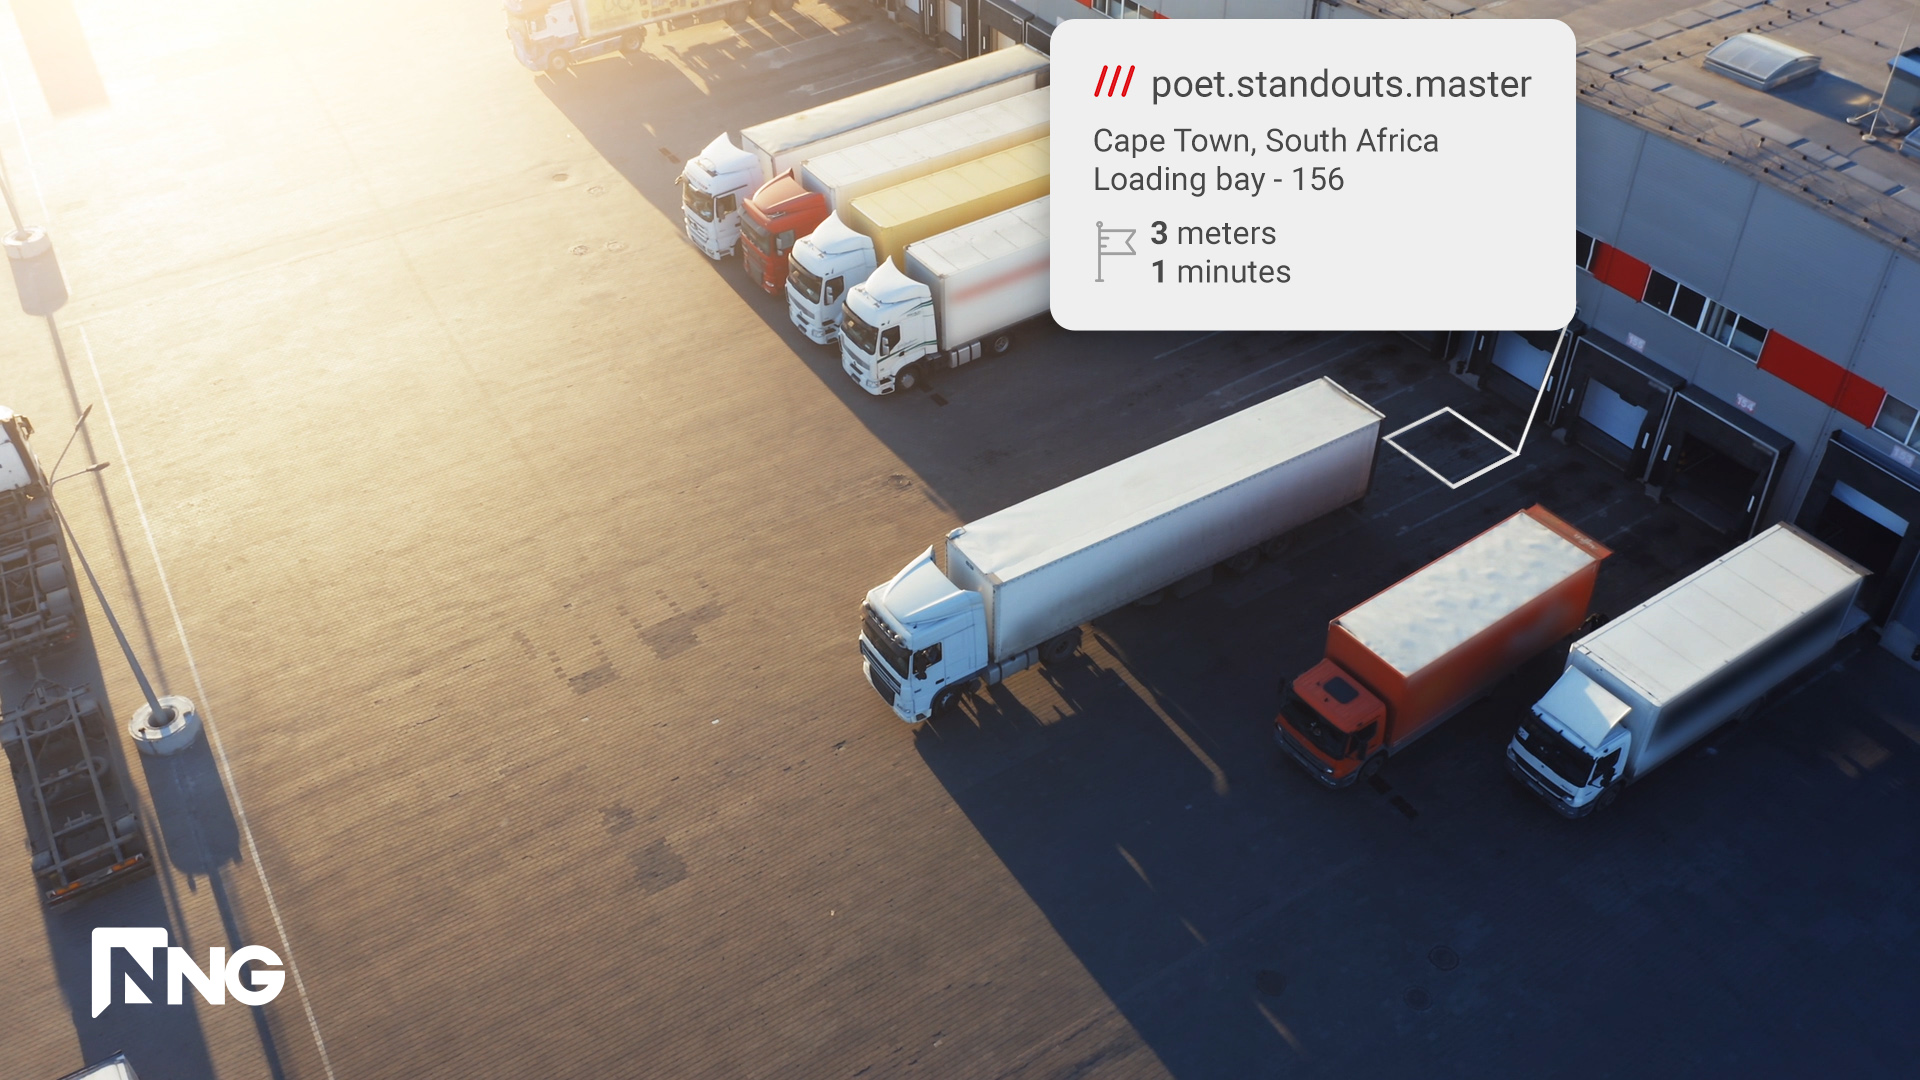 NNG and what3words partner to offer highly accurate commercial vehicle navigation experiences in 2021